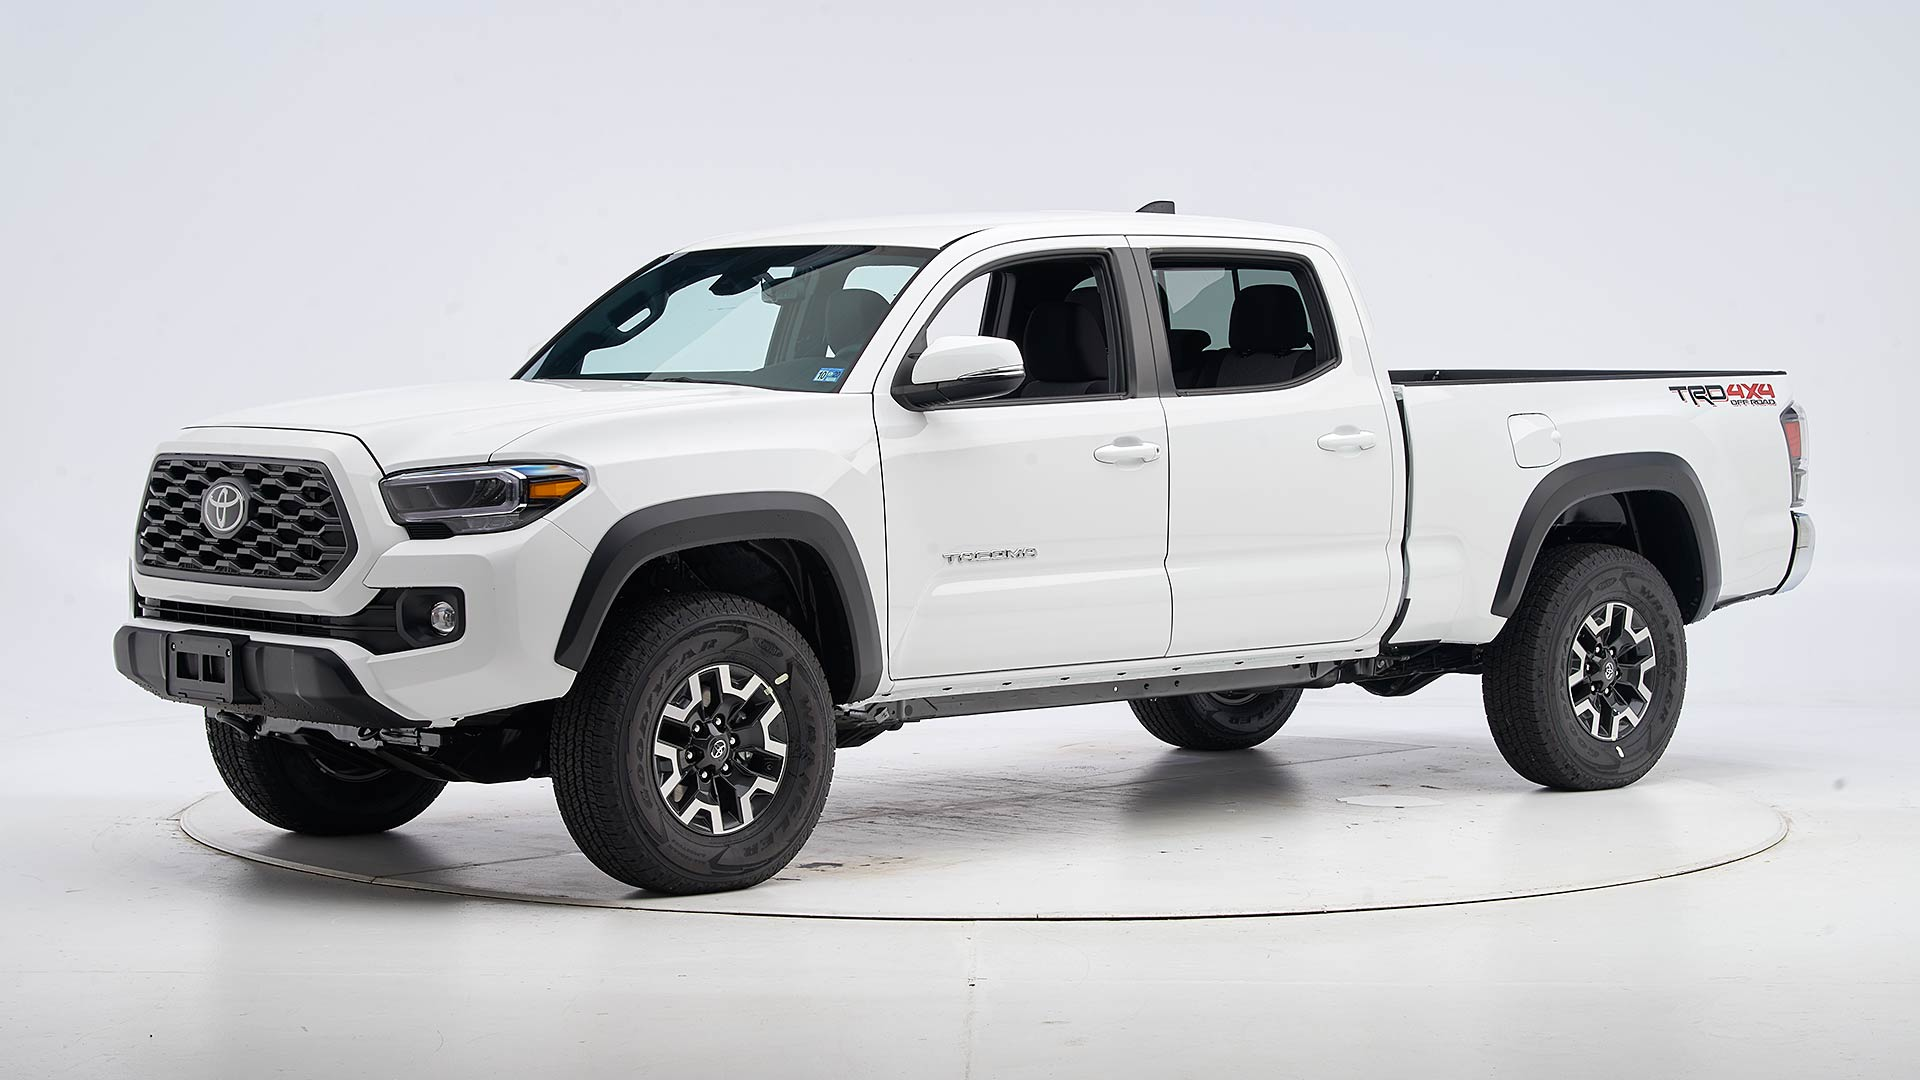 2020 Tacoma Crew Cab Named Top Safety Pick